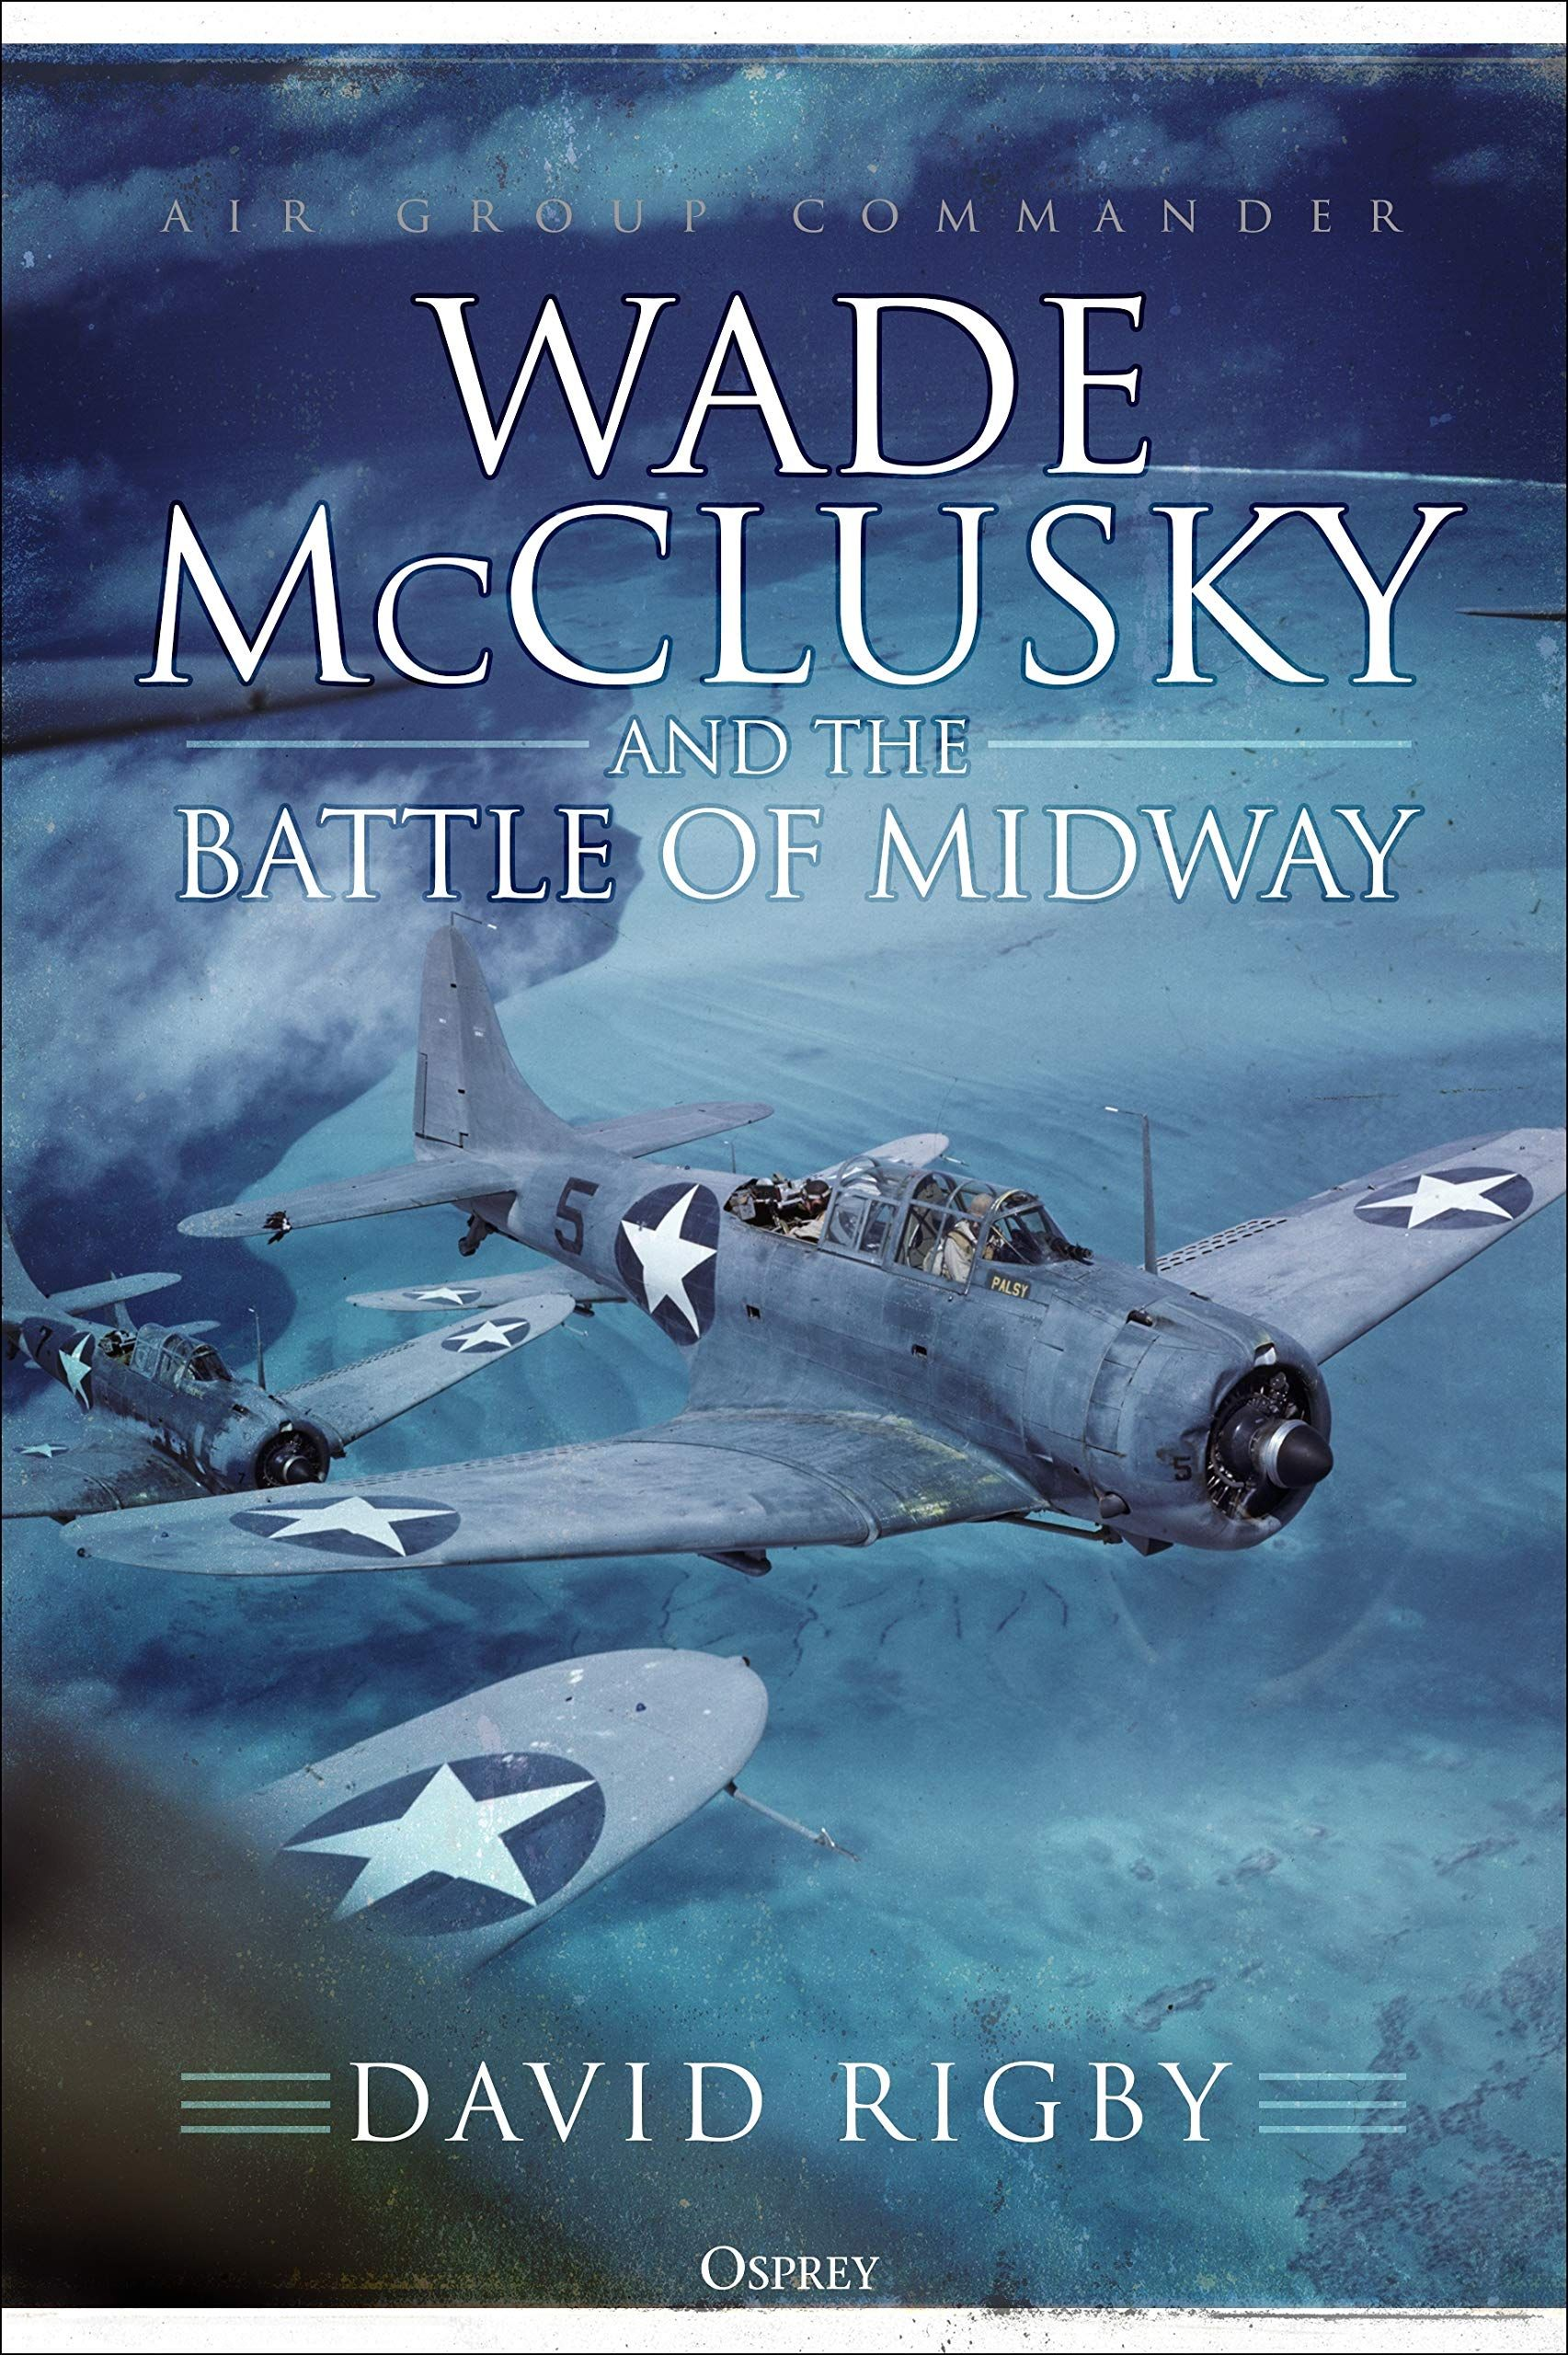 Wade Mcclusky And The Battle Of Midway Hardcover May 21 2019 Battle Mcclusky Wade Midway Free Books Download Free Ebooks Download Free Kindle Books